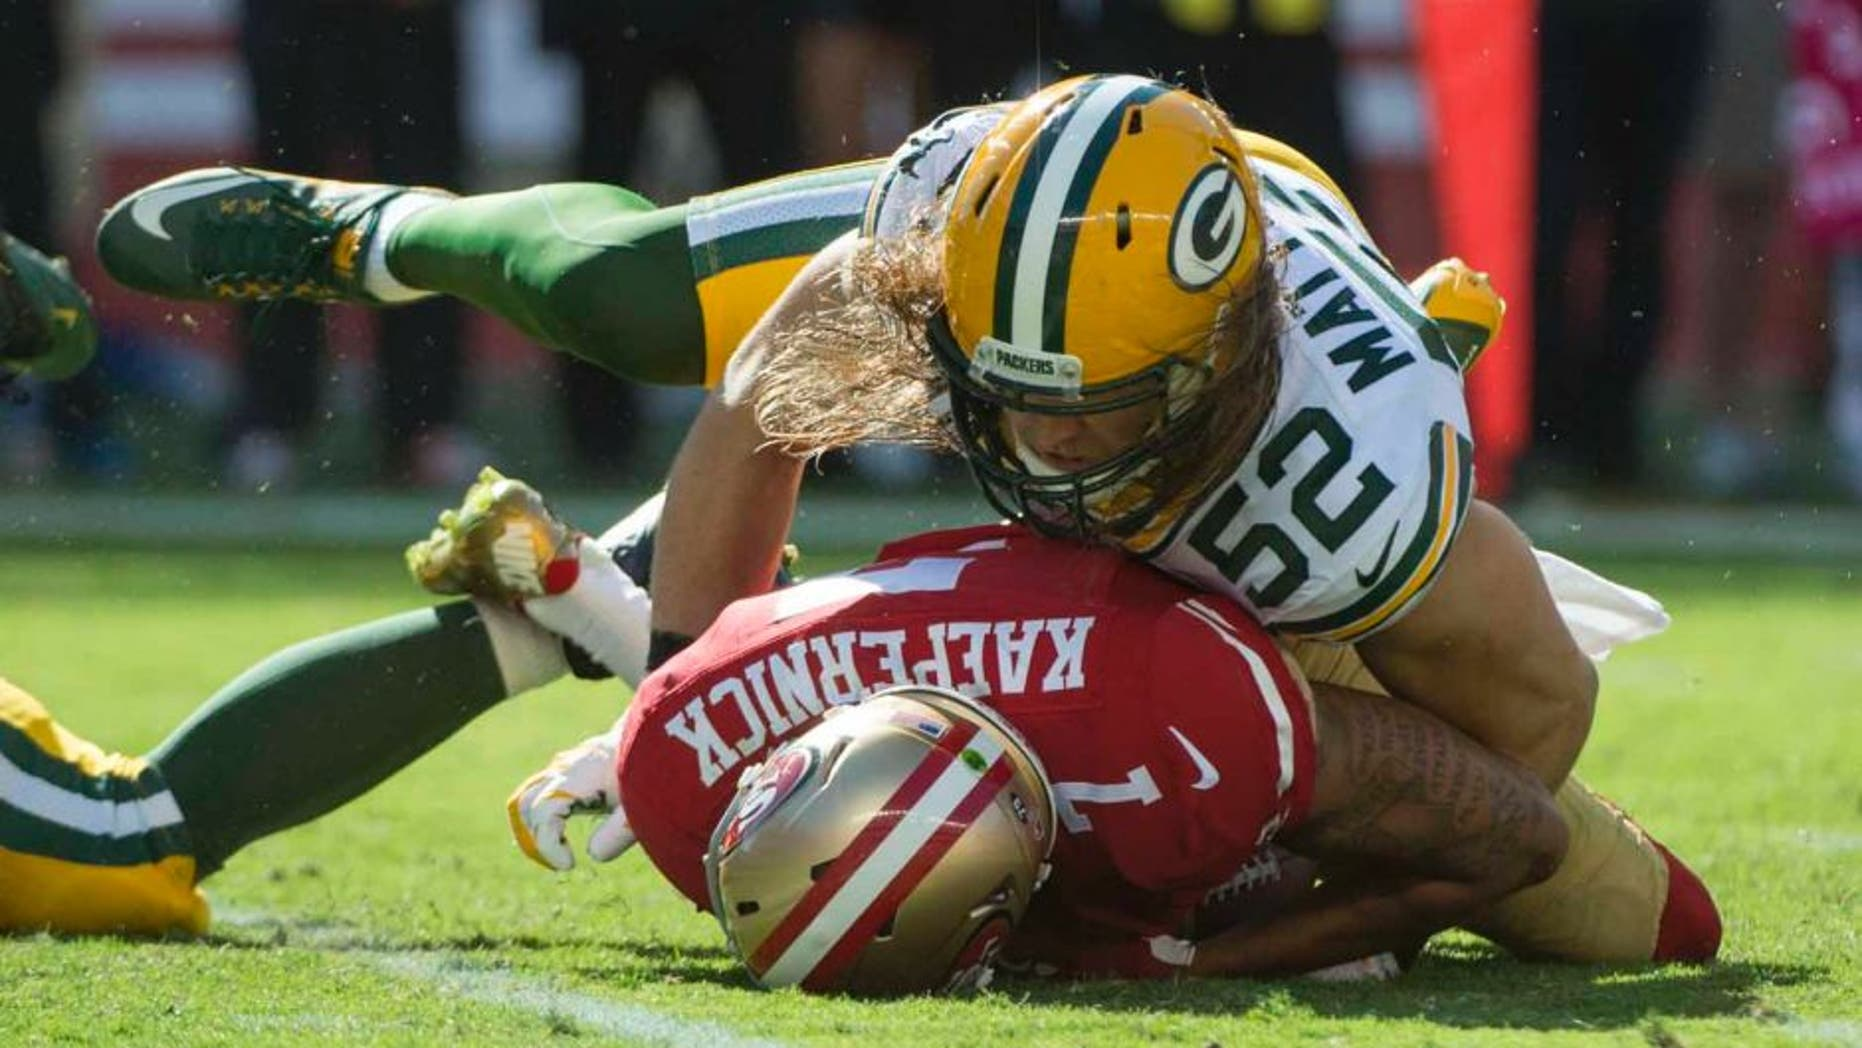 Green Bay Packers inside linebacker Clay Matthews sacks San Francisco 49ers quarterback Colin Kaepernick during the third quarter at Levi's Stadium in Santa Clara, Calif., on Sunday, Oct. 4, 2015.